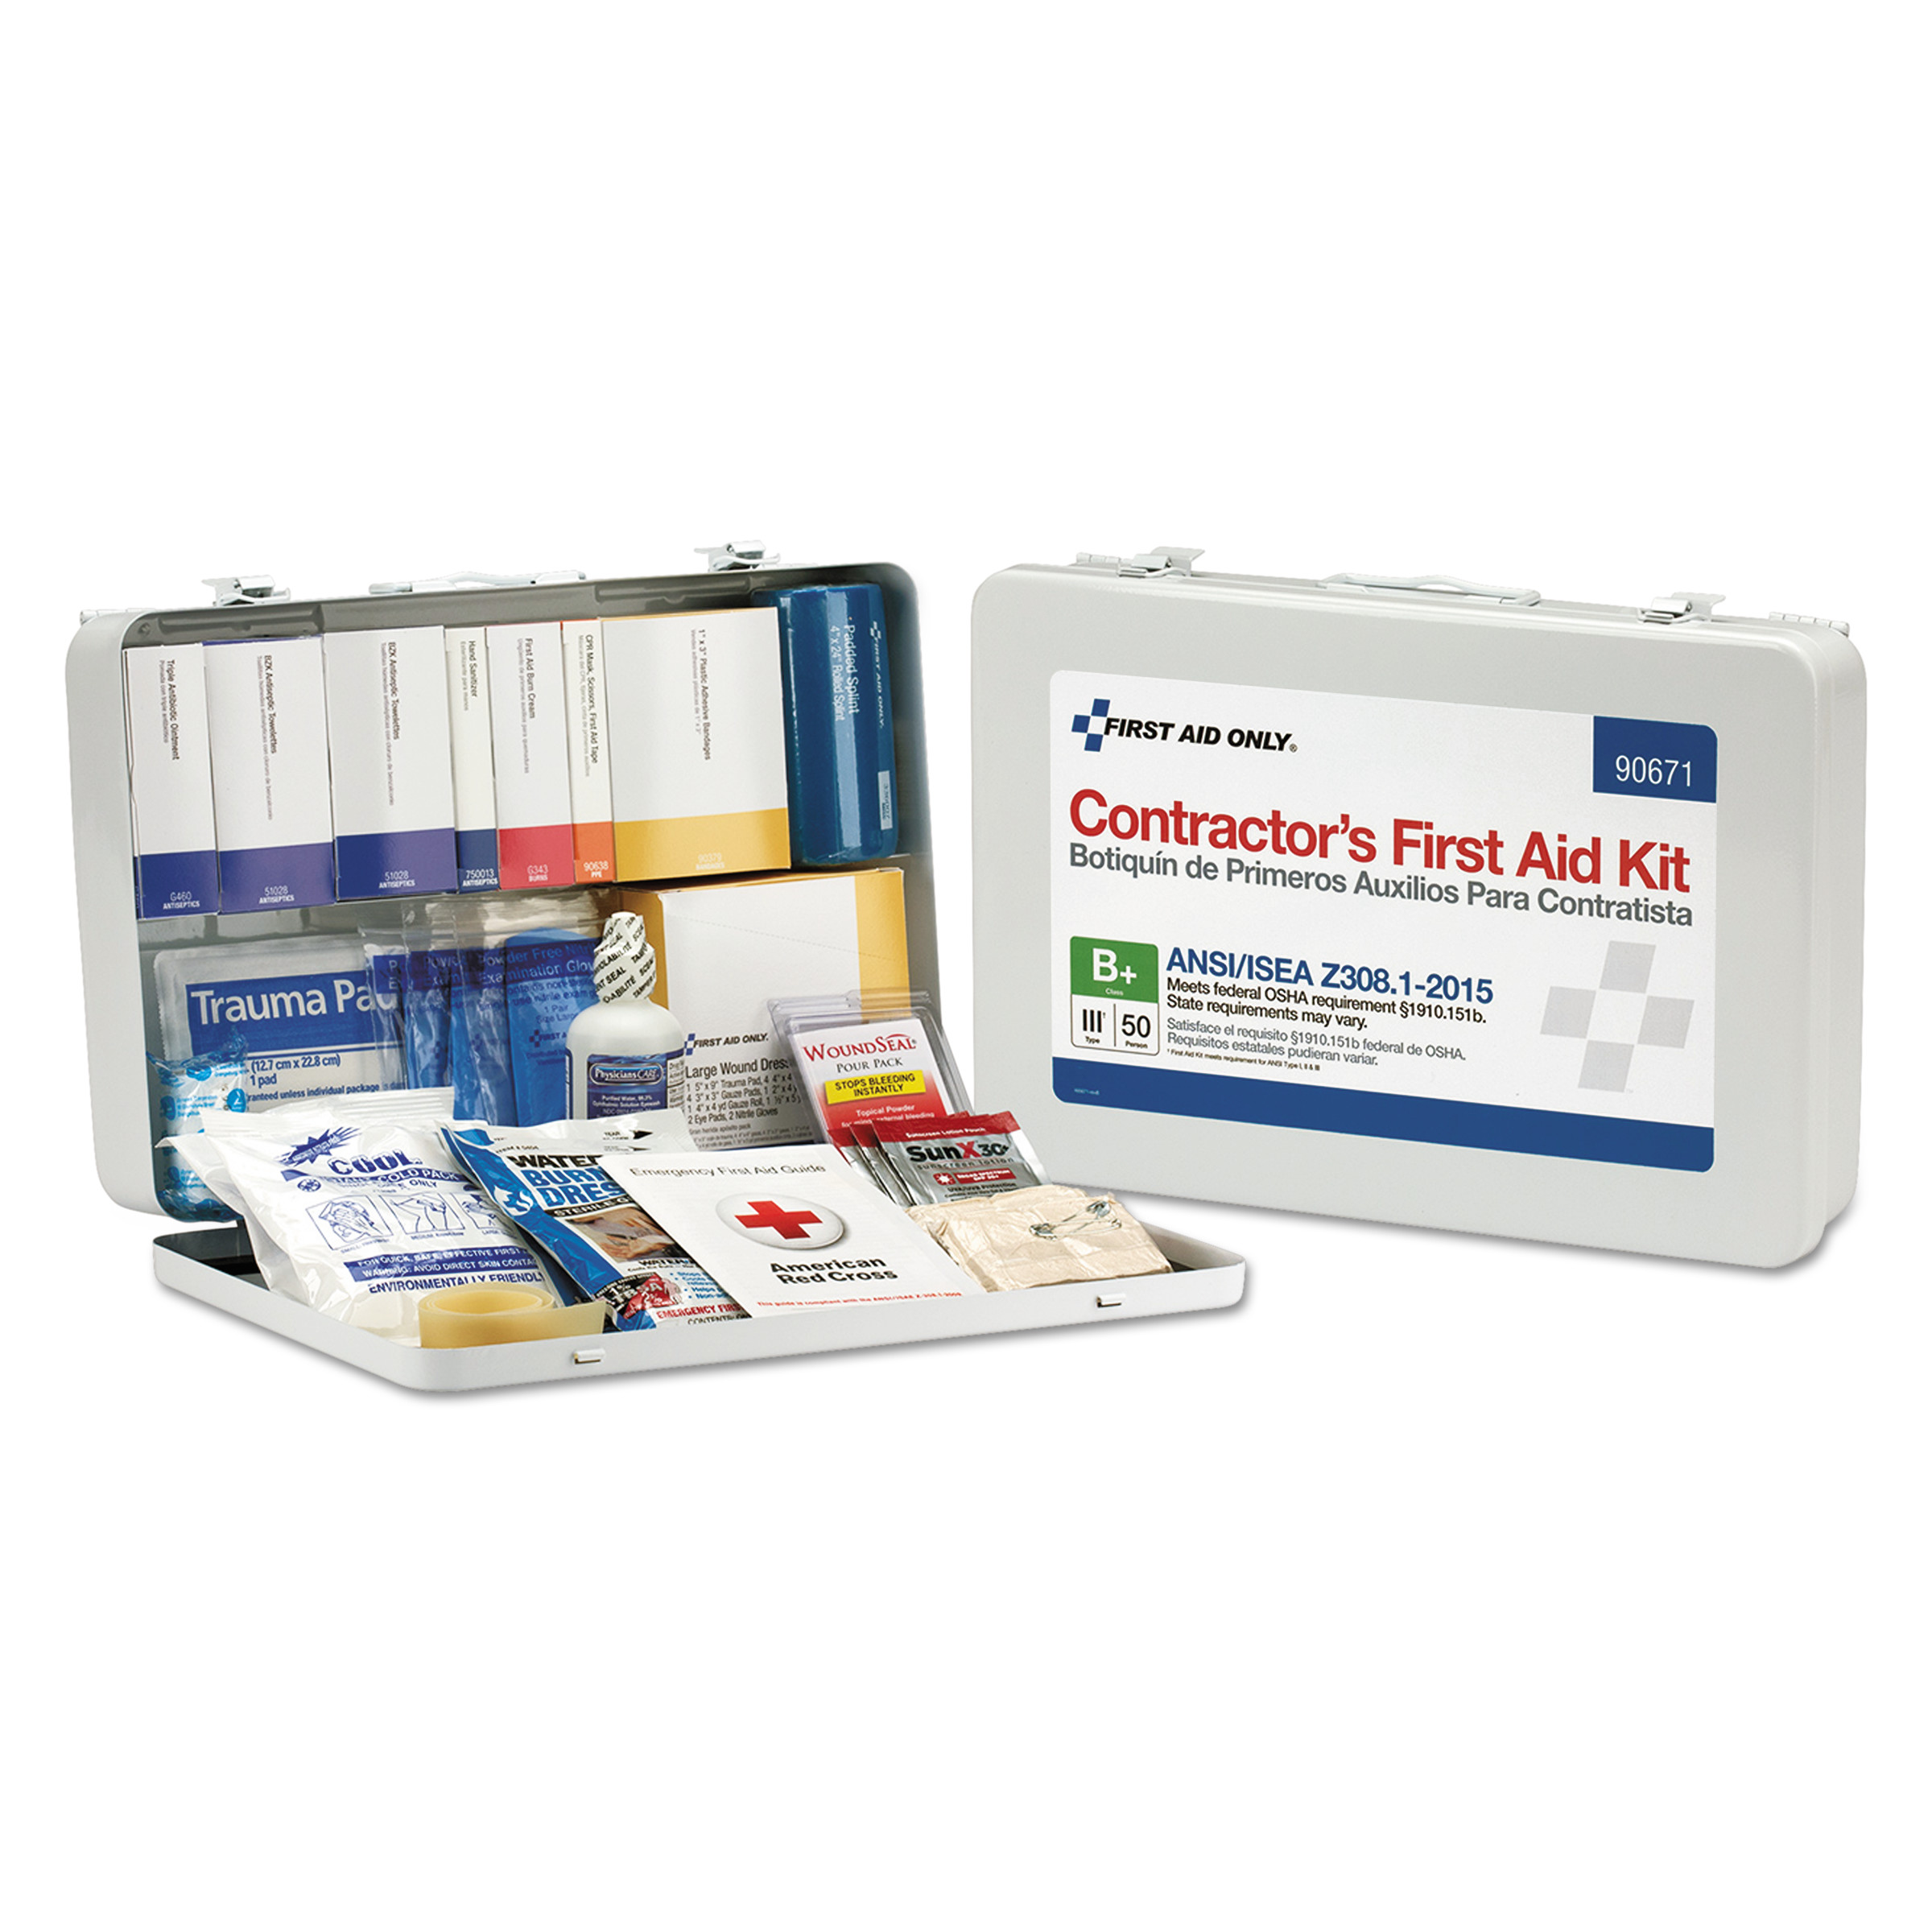 First Aid Only Contractor ANSI Class B First Aid Kit for 50 People, 254 Pieces